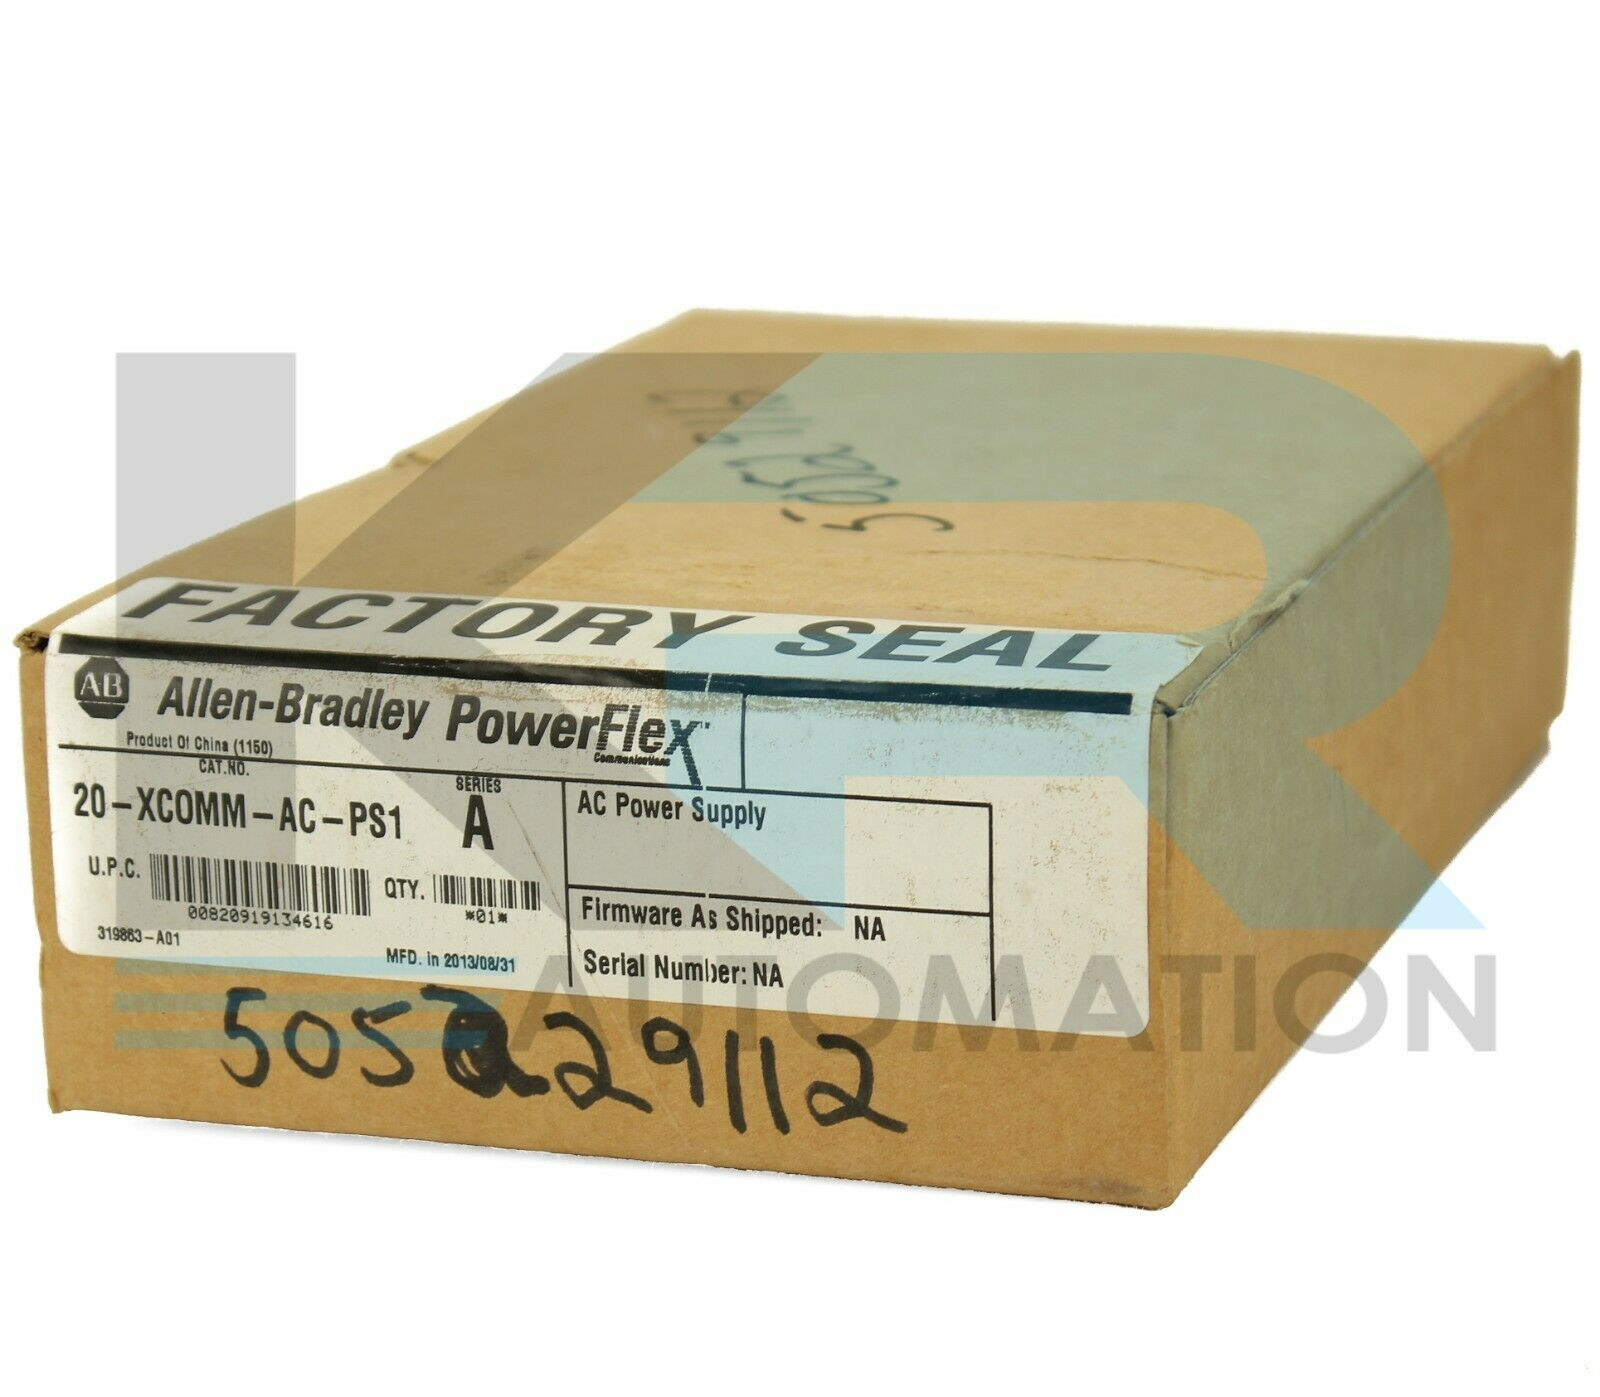 NEW Allen Bradley 20-XCOMM-AC-PS1 /A AC Power Adapter